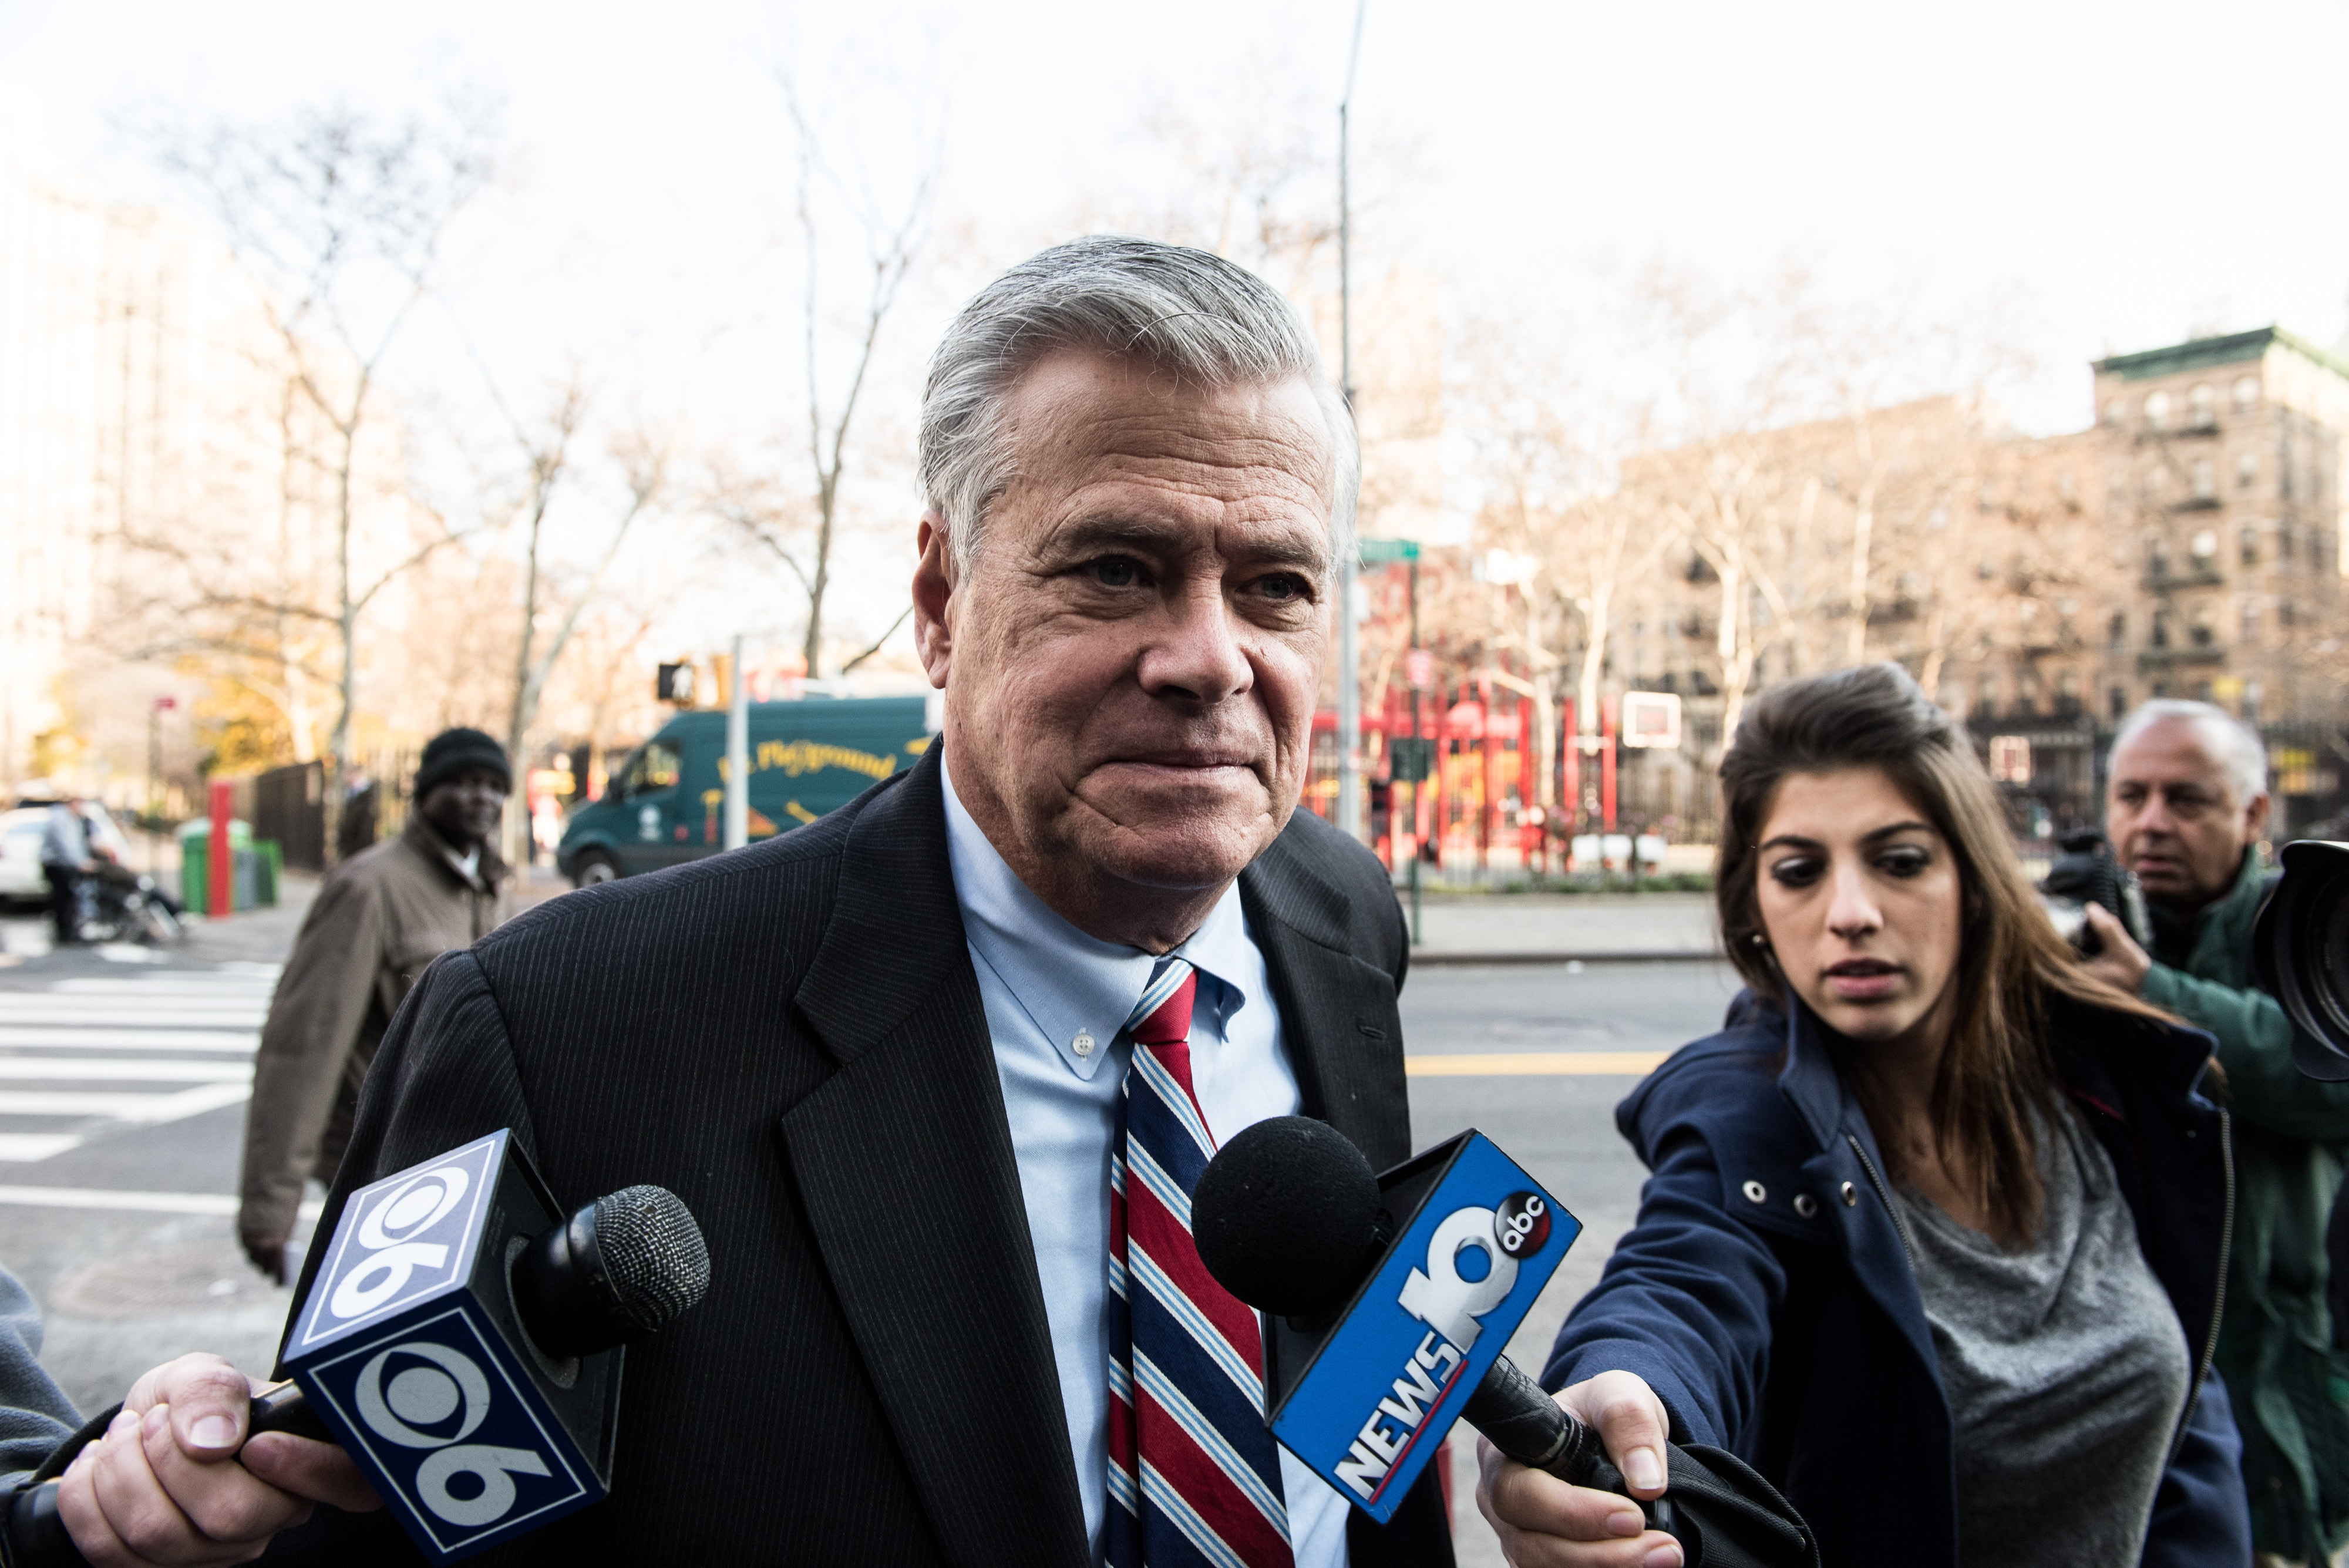 The corruption convictions of former New York State Senate Majority Leader Dean Skelos, and former Assembly Speaker Sheldon Silver before him, should be enough to spur real ethics reform. The question is: Will it? (New York Times photo)